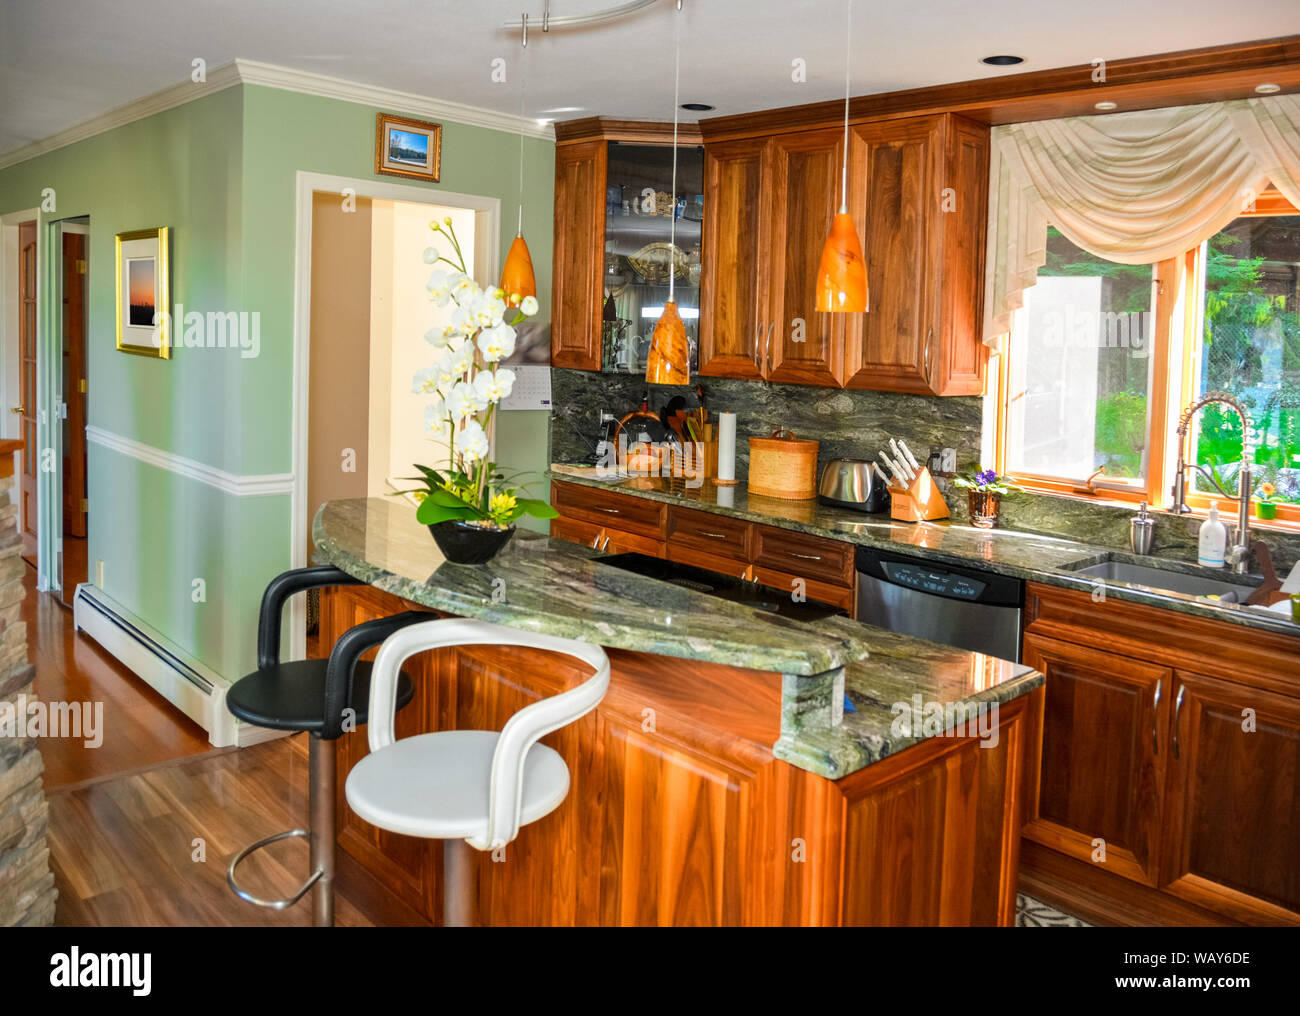 Stylish Kitchen Wooden Interior With Island Table With Two Chairs Beside Stock Photo Alamy